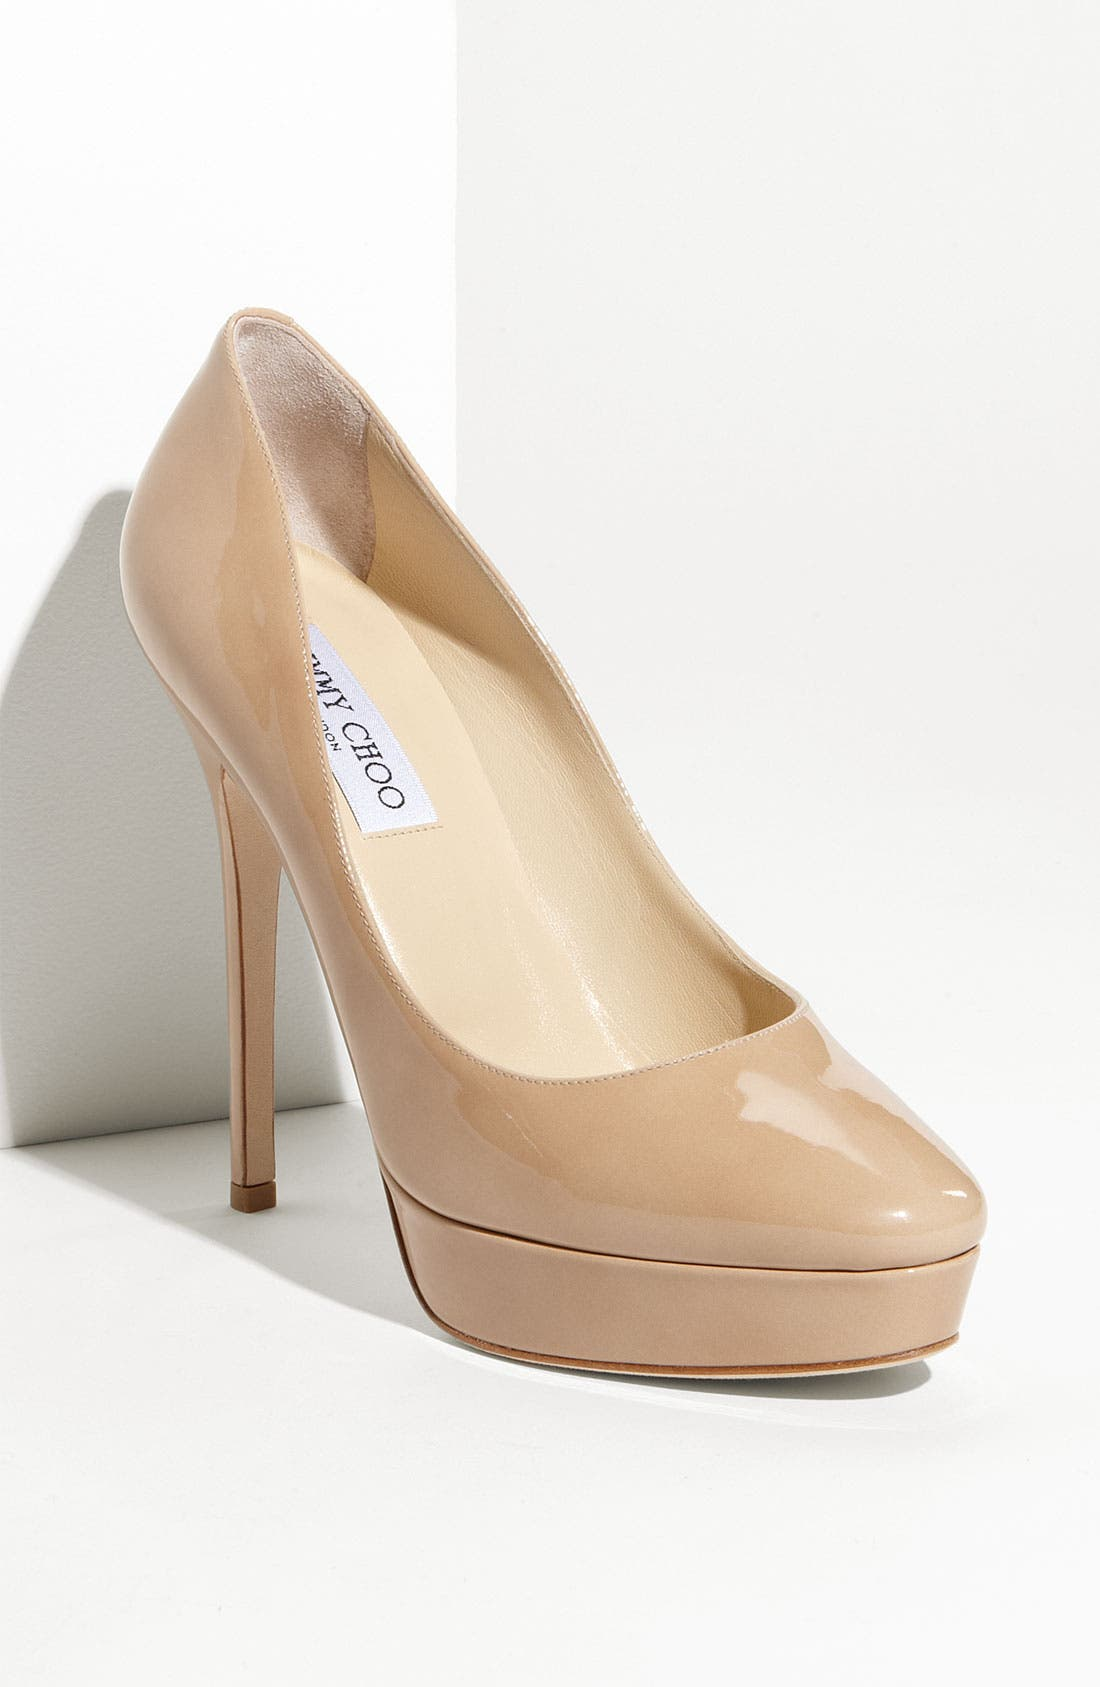 Main Image - Jimmy Choo 'Cosmic' Platform Pump